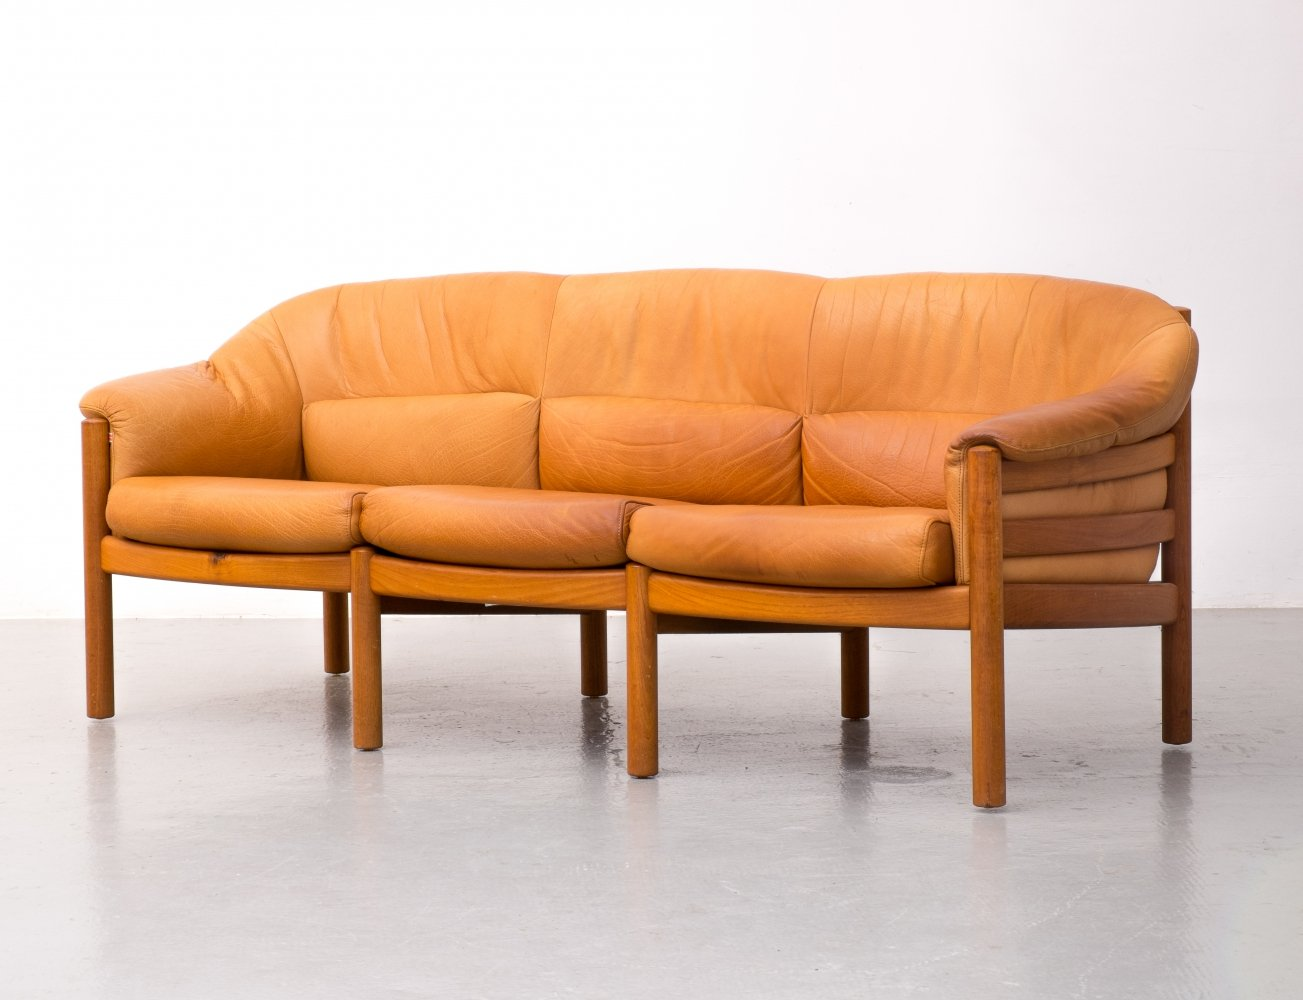 Leather Danish sofa by Skippers Furniture, 1970s